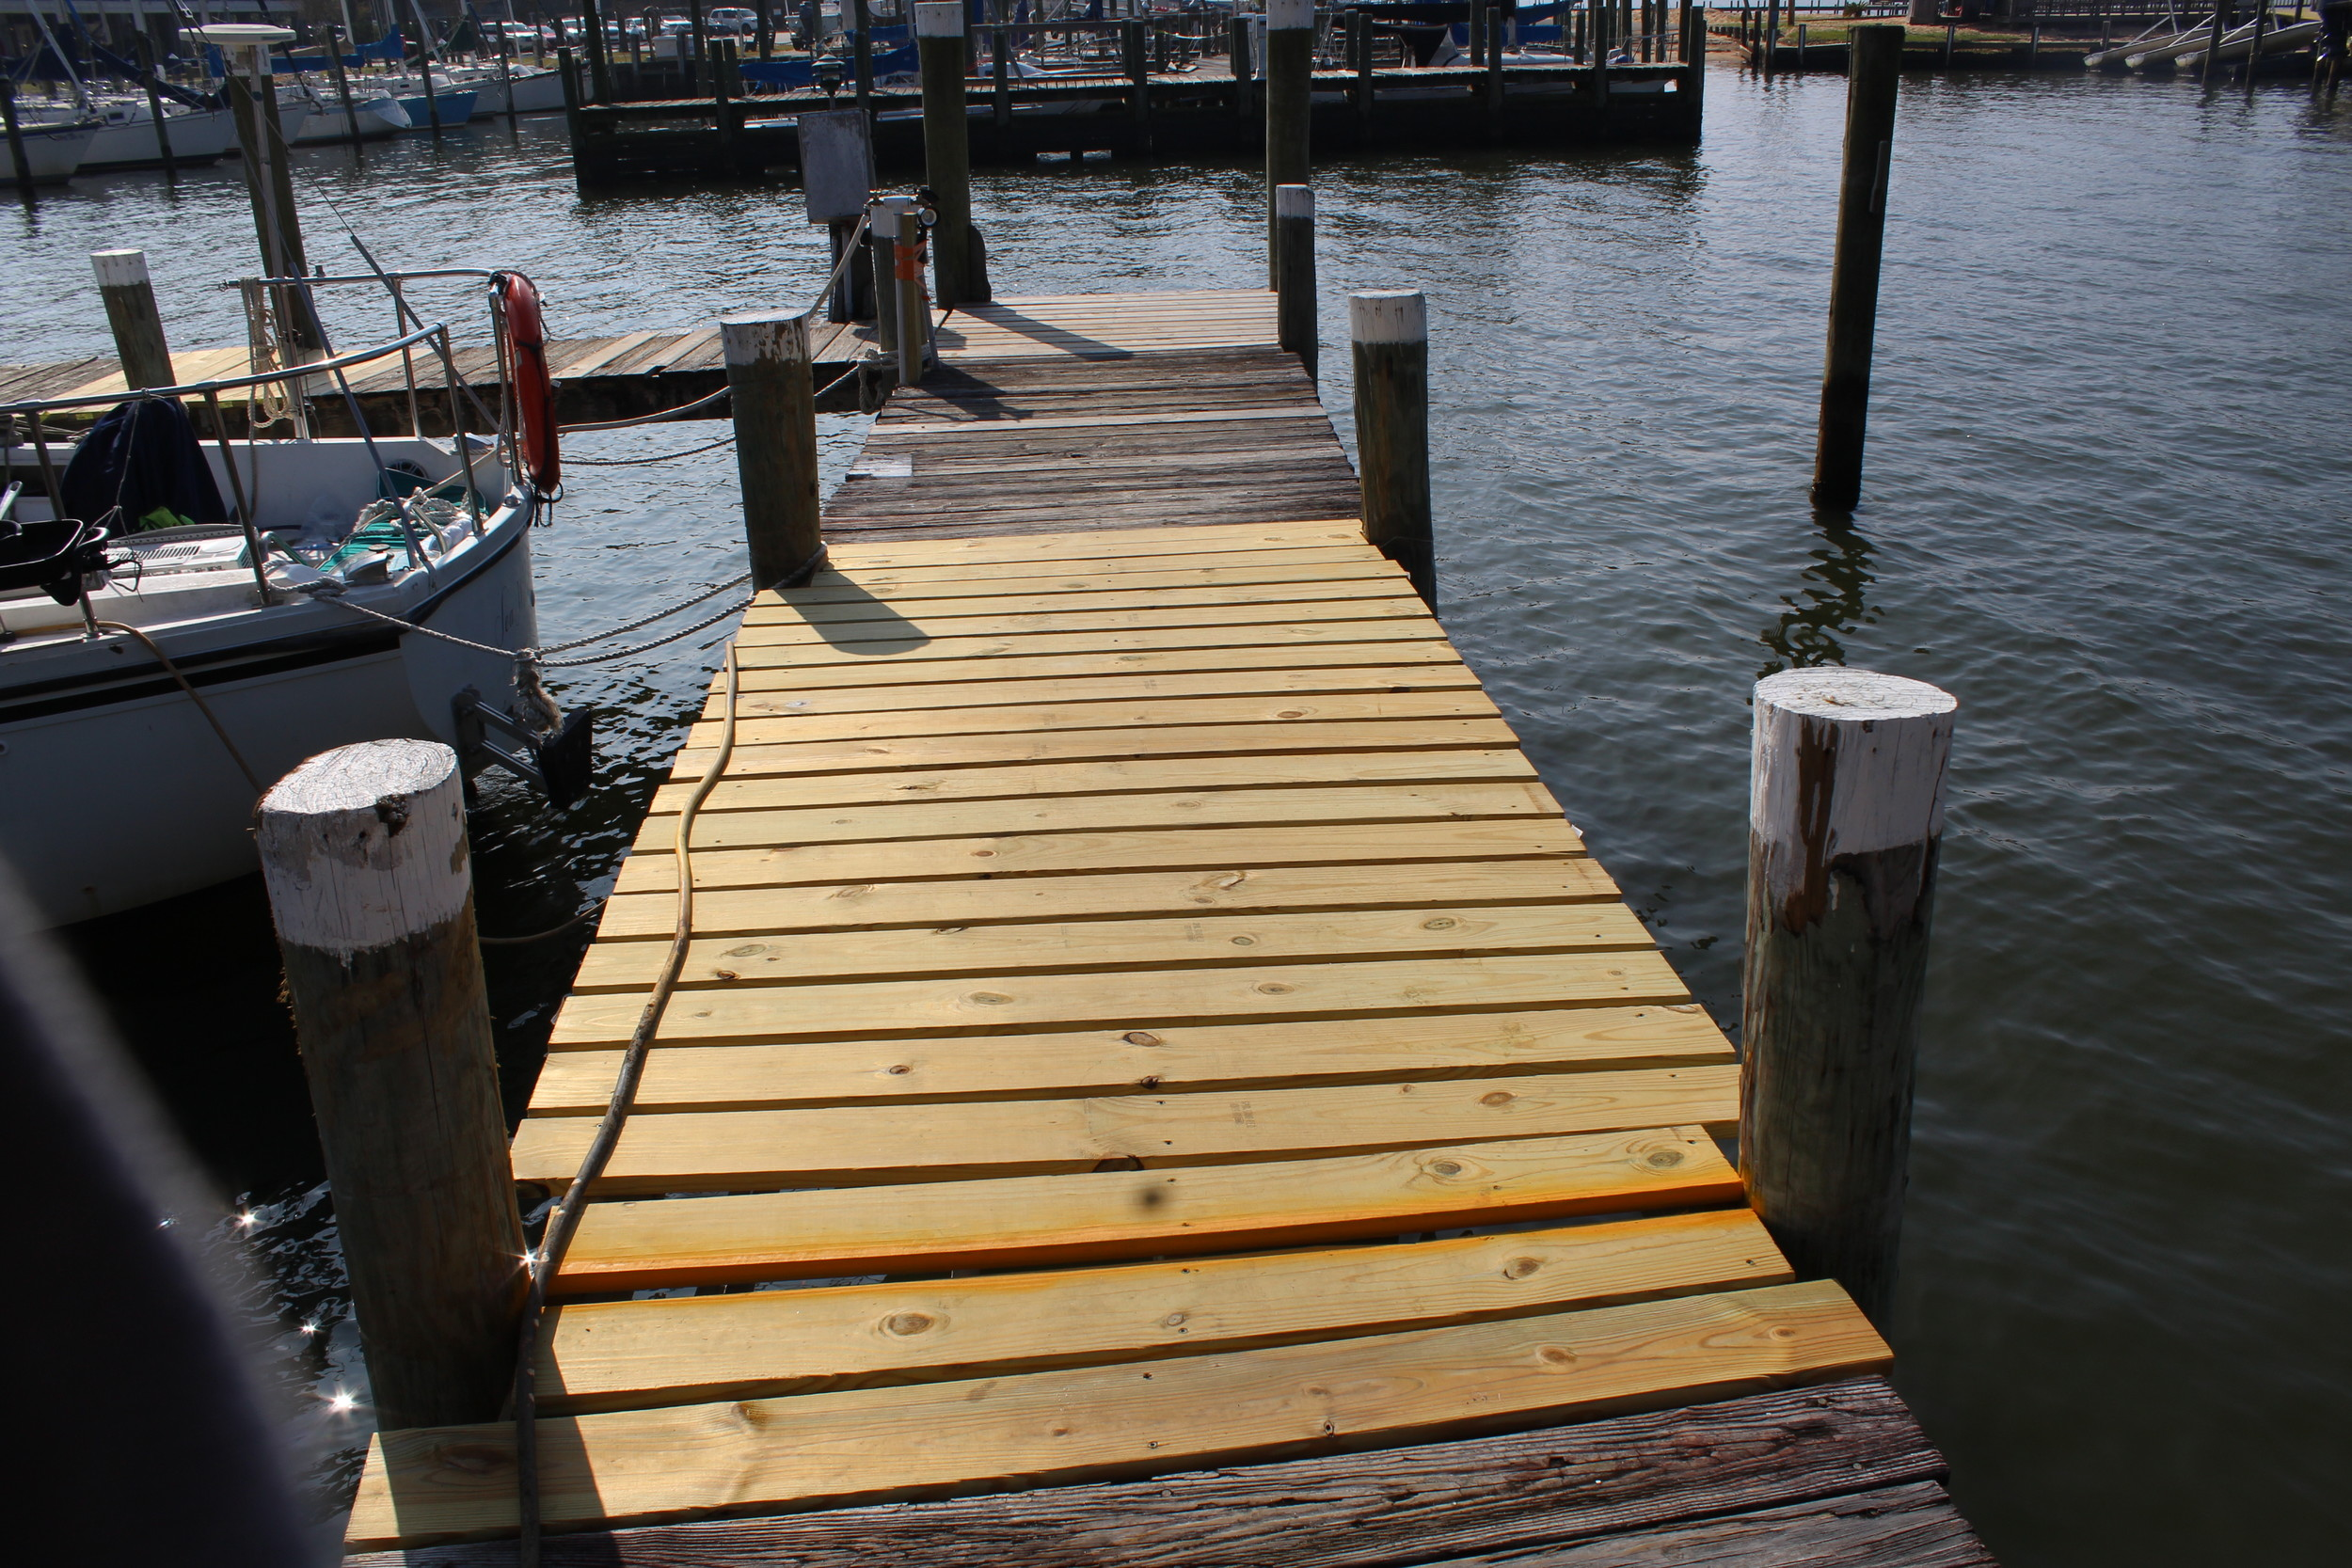 Hurricane Nate recently damaged some portions of the Fairhope Docks. The city has been able to fix some vital portions already, but is currently waiting for FEMA's response to address other damages caused.